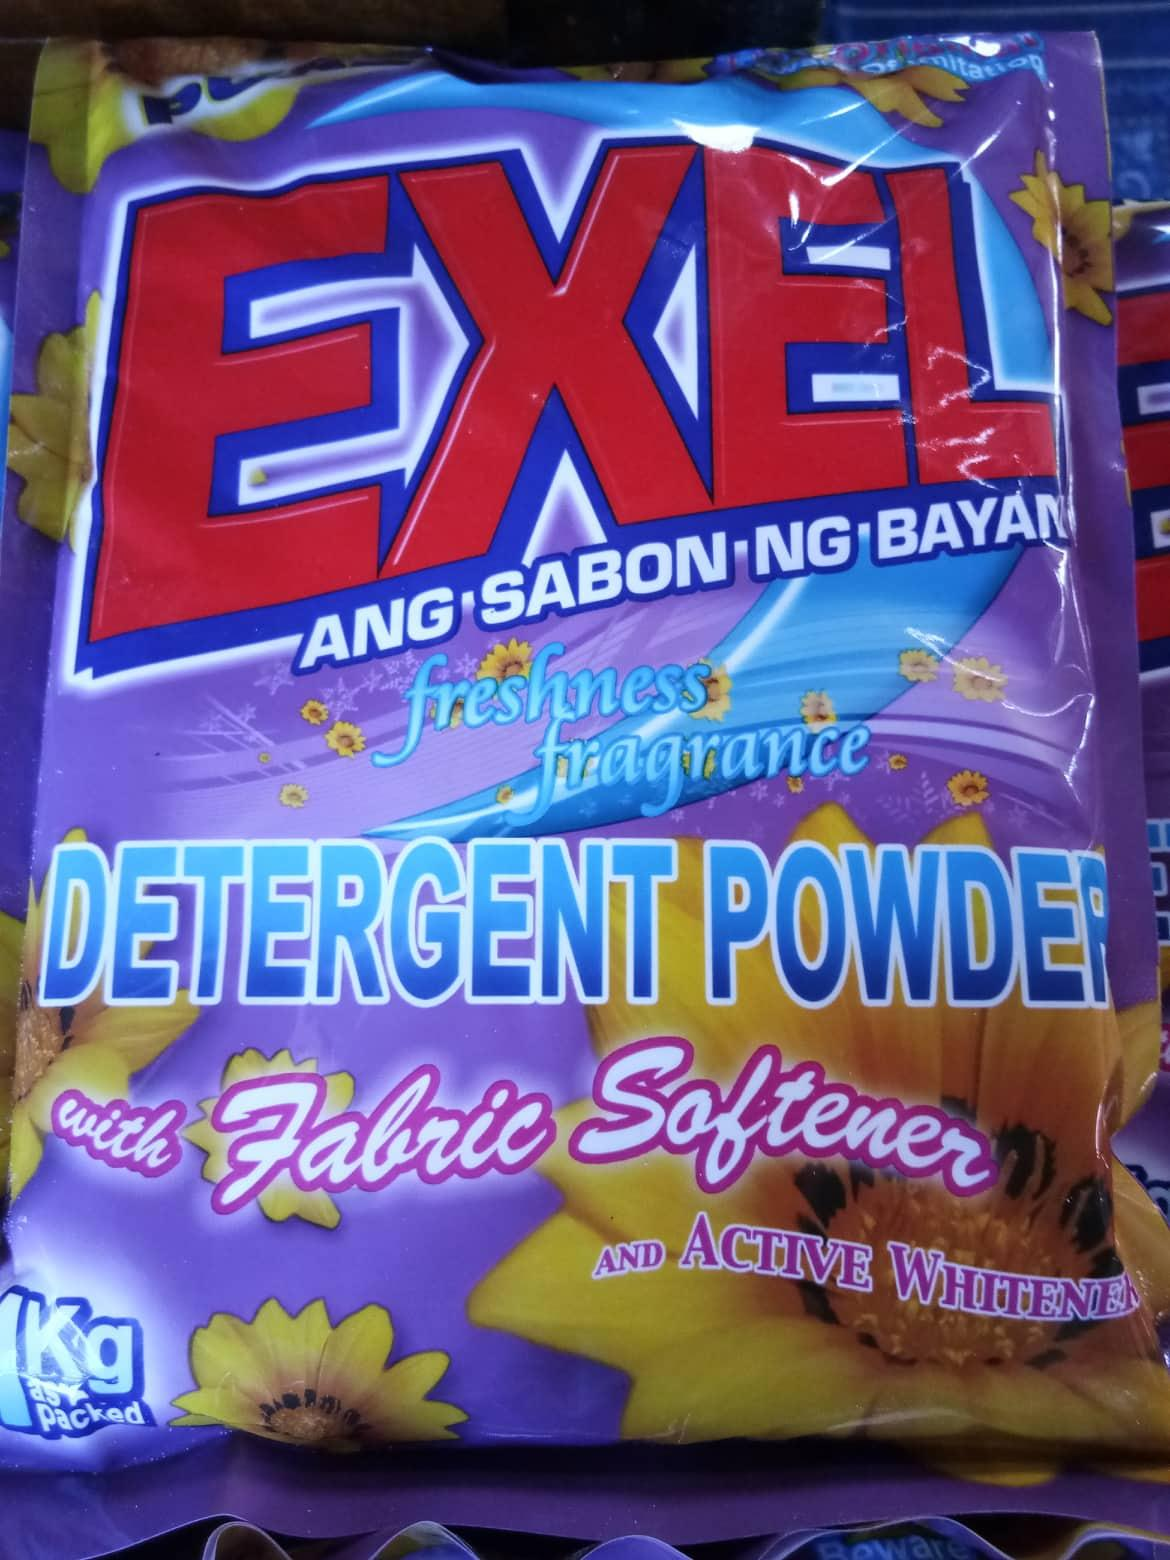 Laundry Detergent brands - Washing Powder on sale, prices